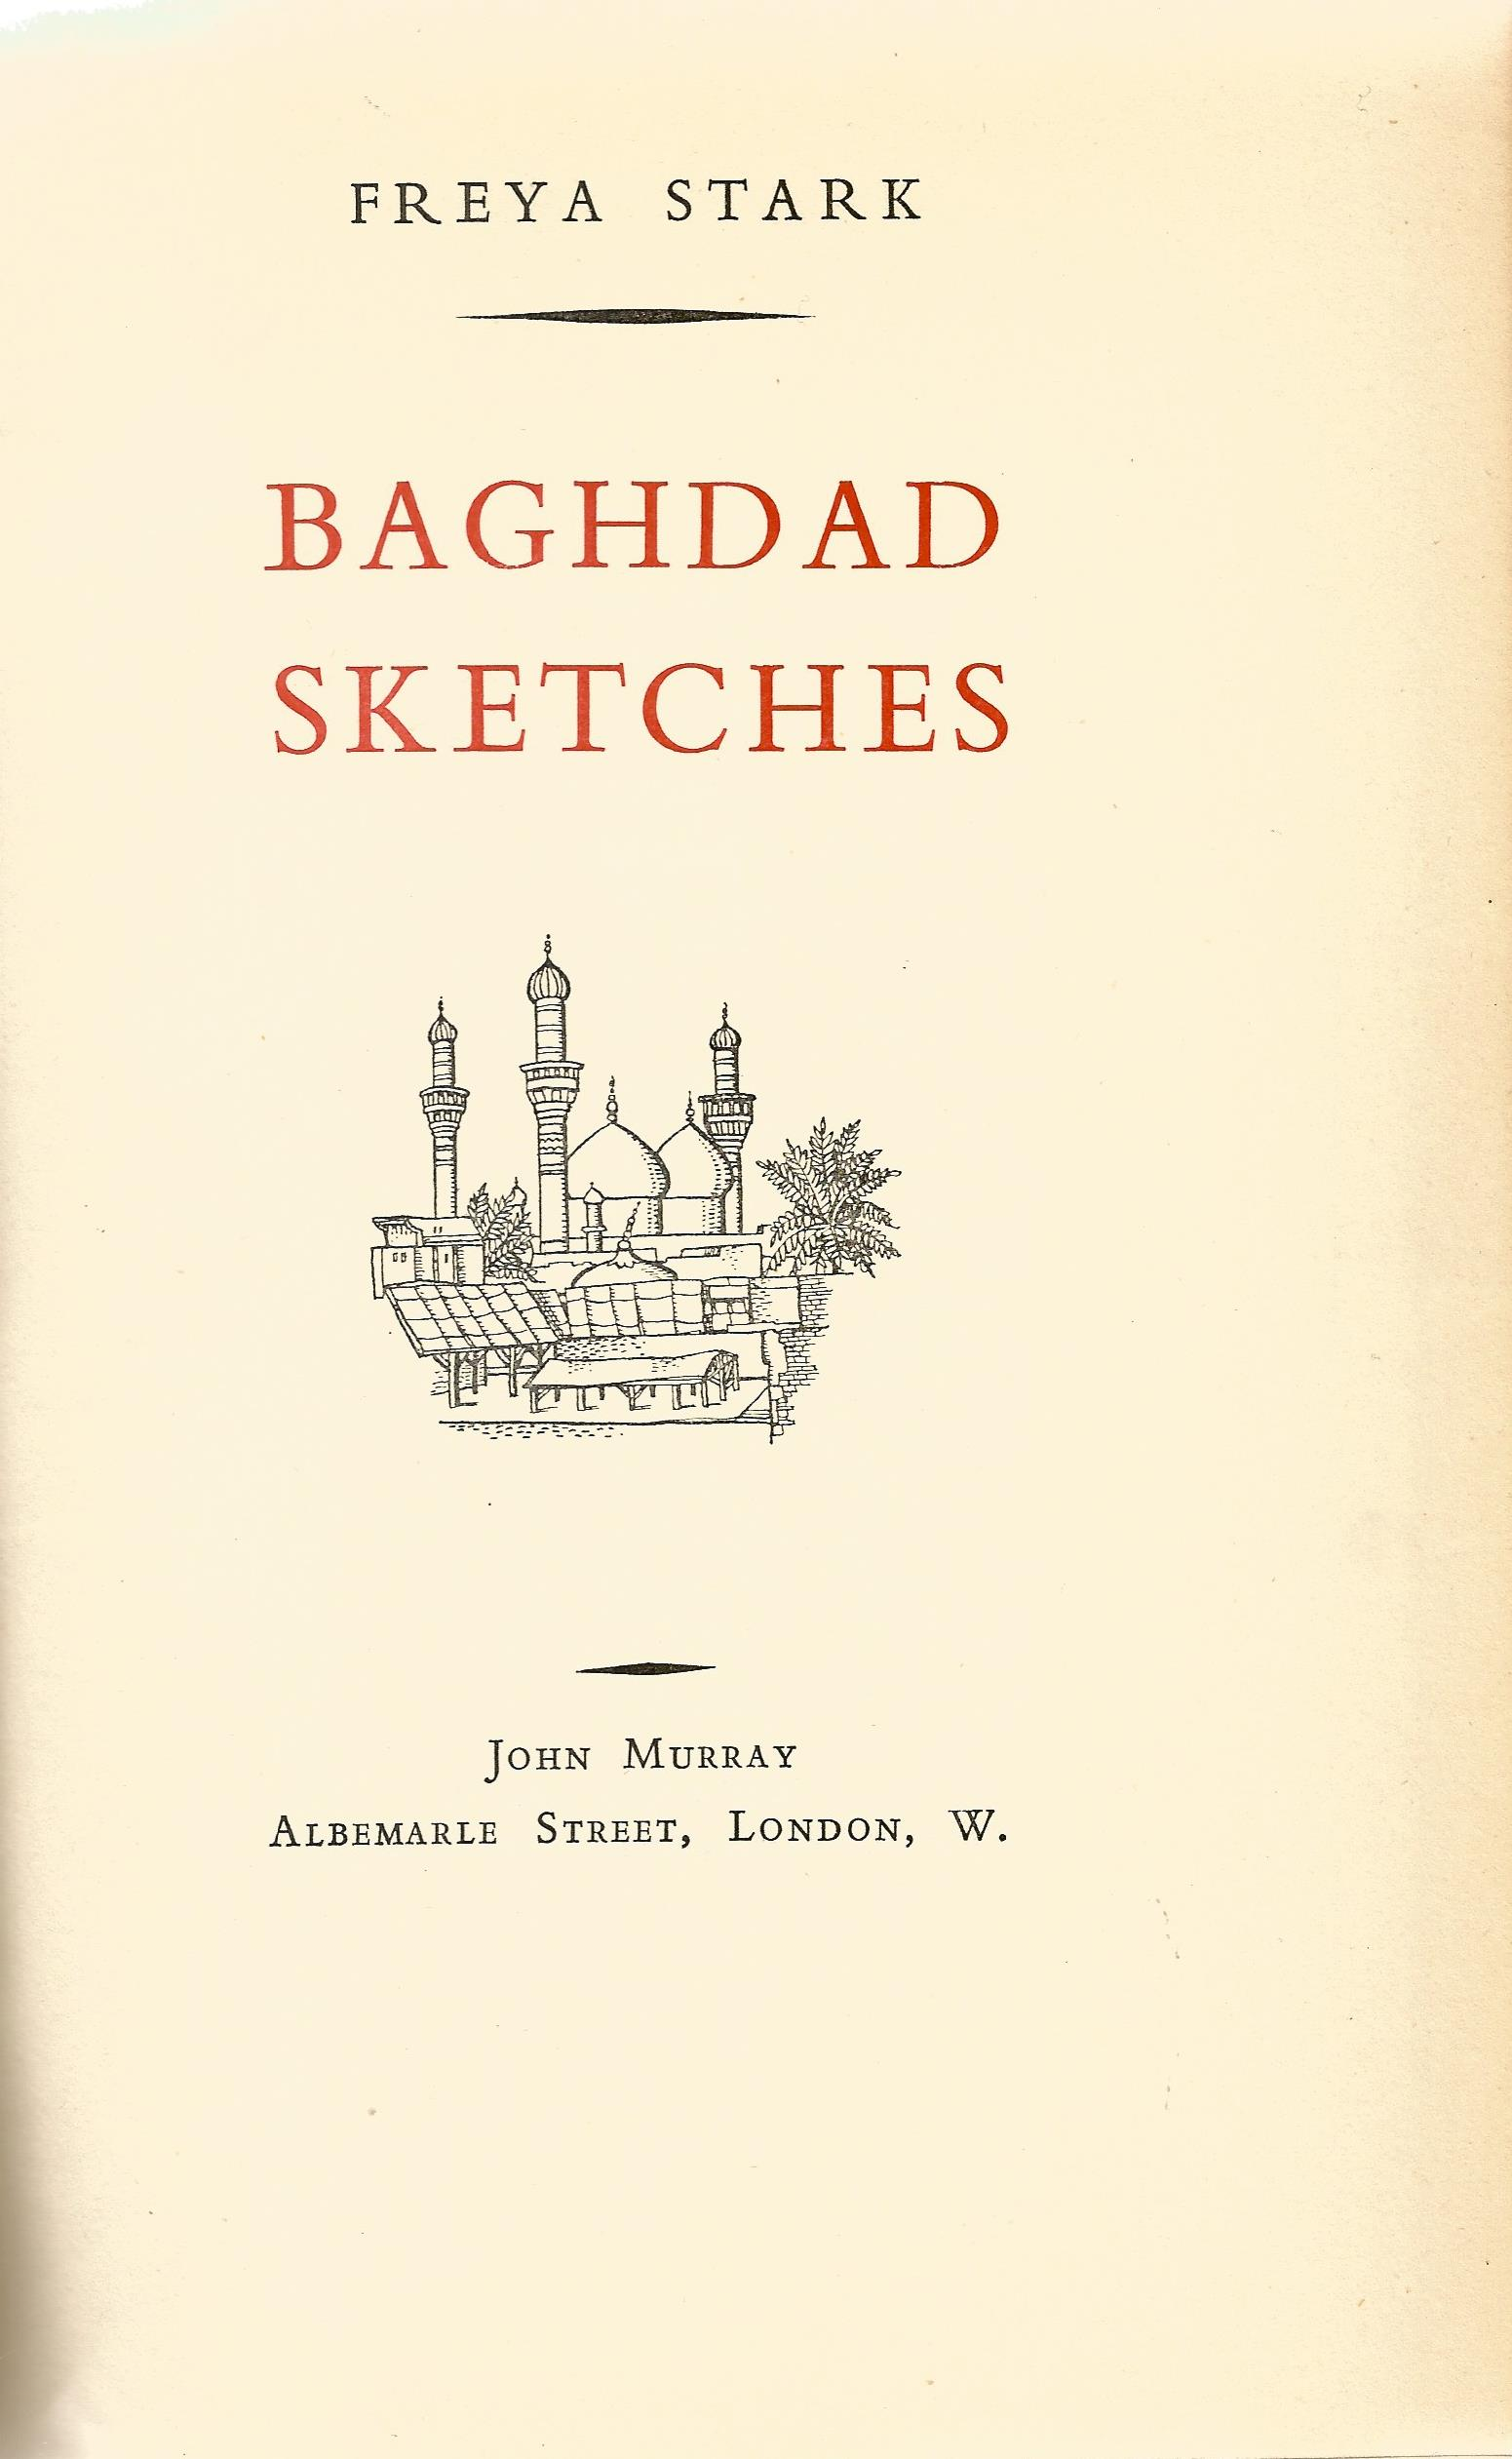 Hardback Book Baghdad Sketches by Freya Stark First Edition 1937 published by John Murray good - Image 2 of 3